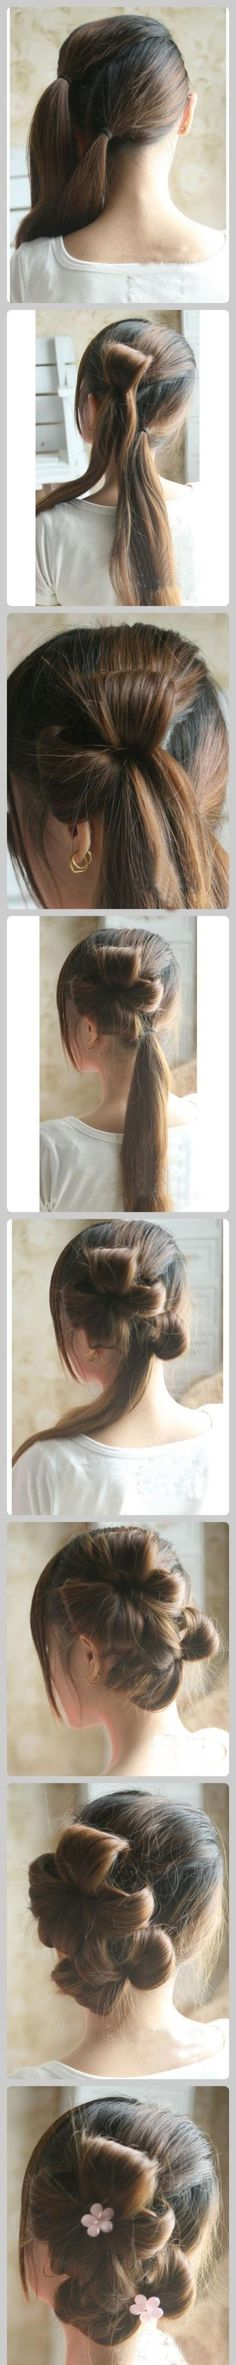 Double Ribbon Updo Hairstyle <3